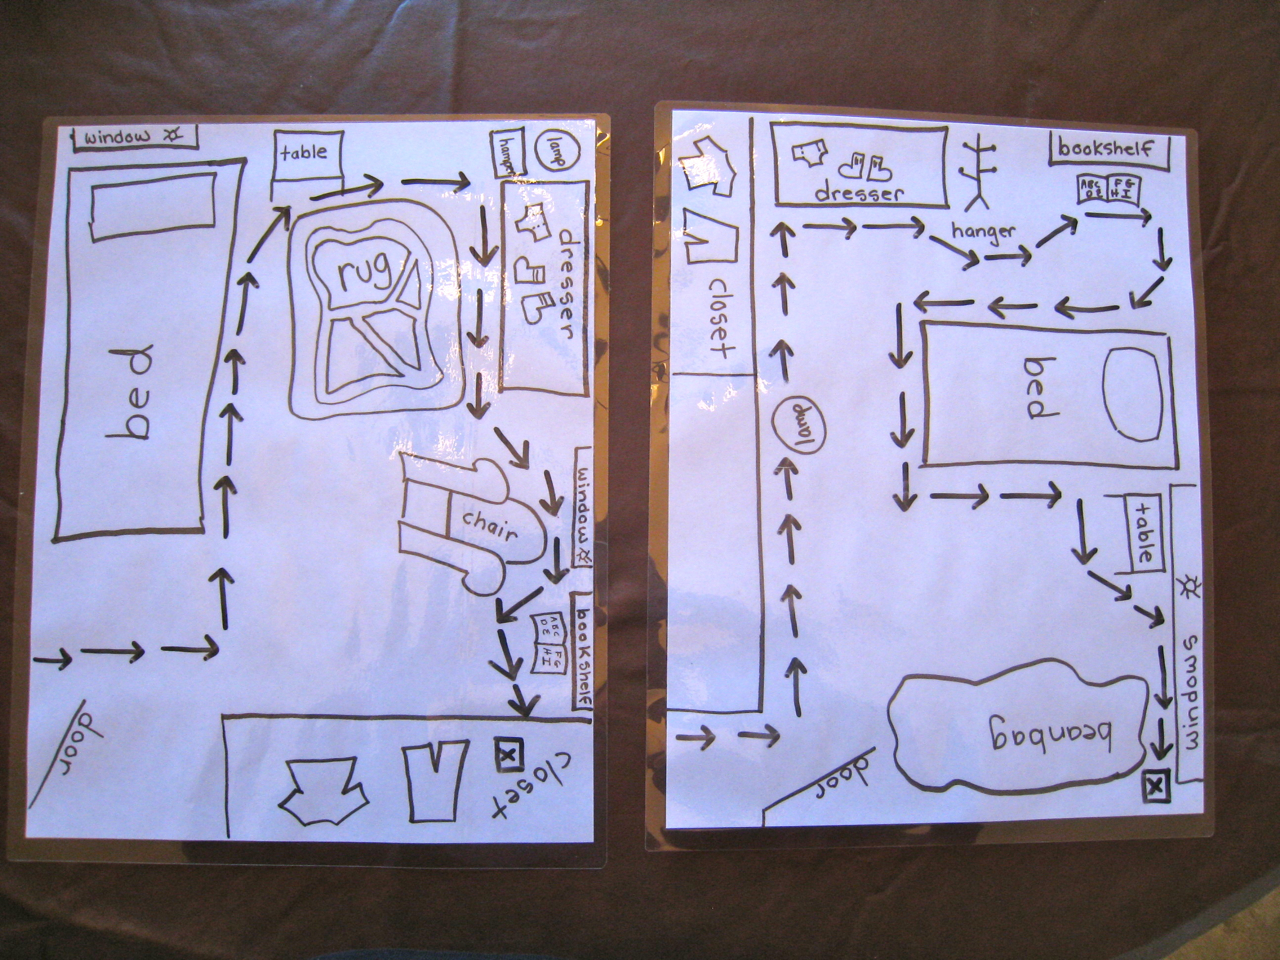 What Did We Do All Day Treasure Maps